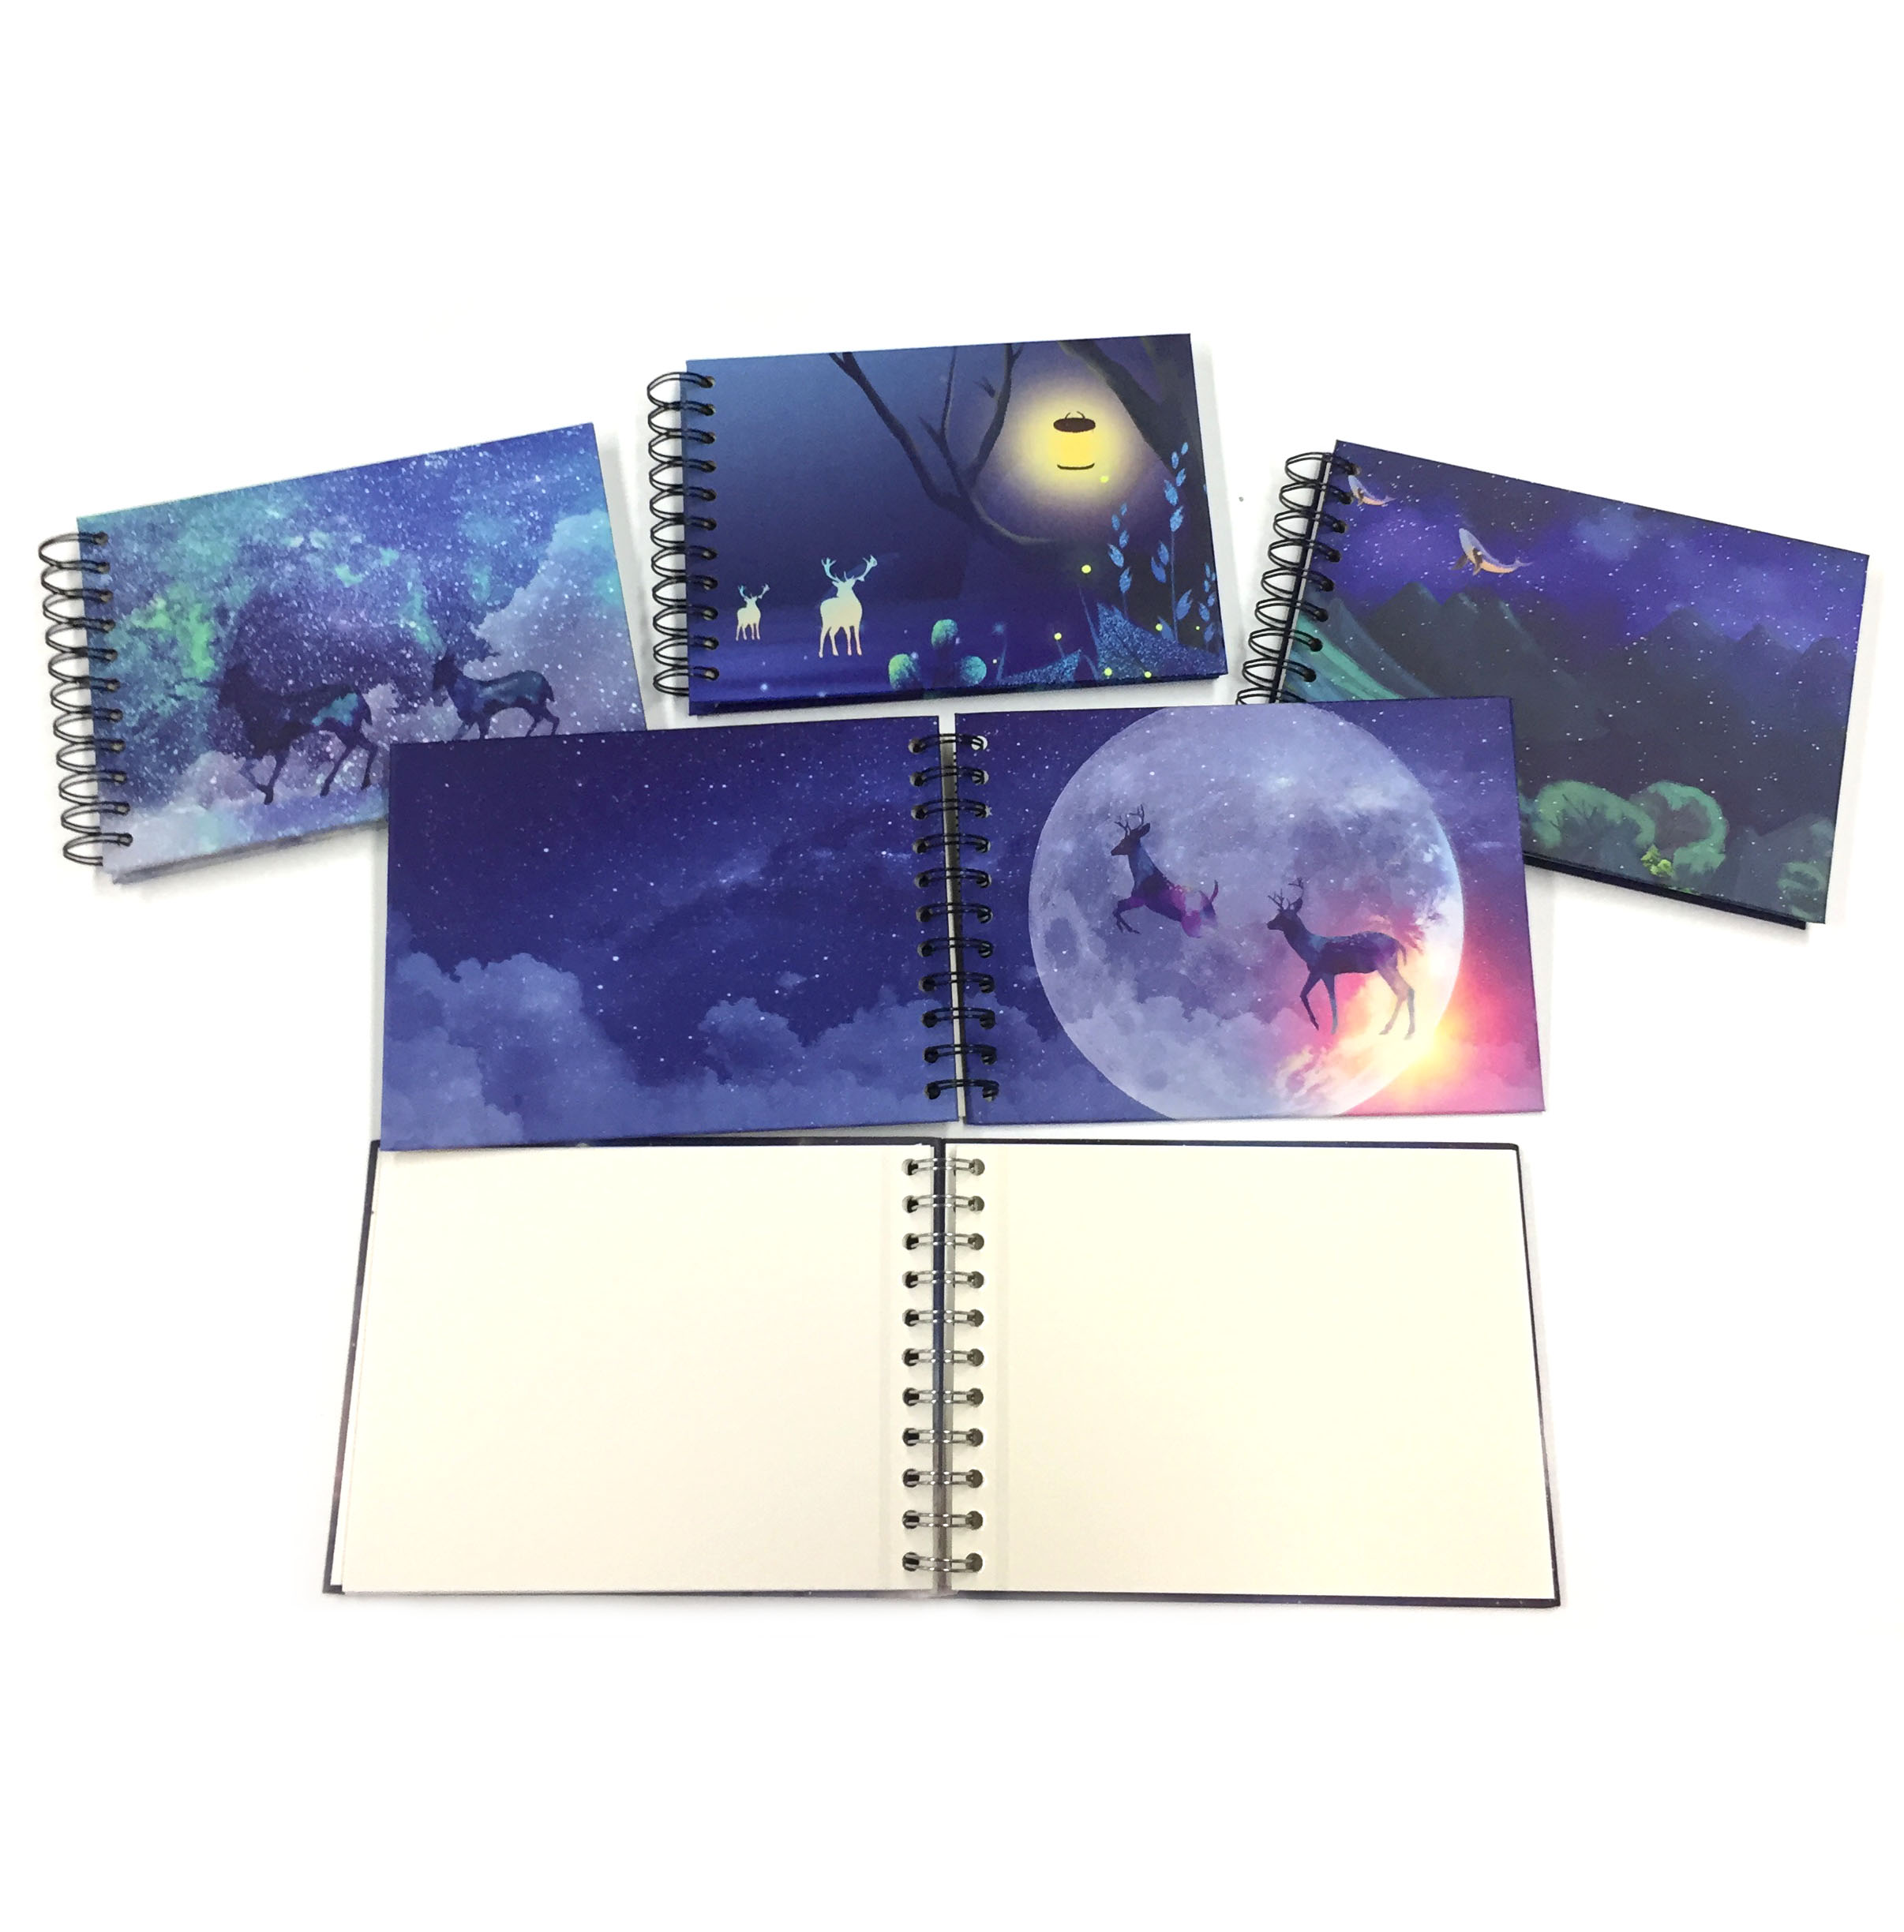 Starry Sky Christmas ReinDeer Handmade 5.8'' x 8'' Spiral Self Adhesive Photo Album